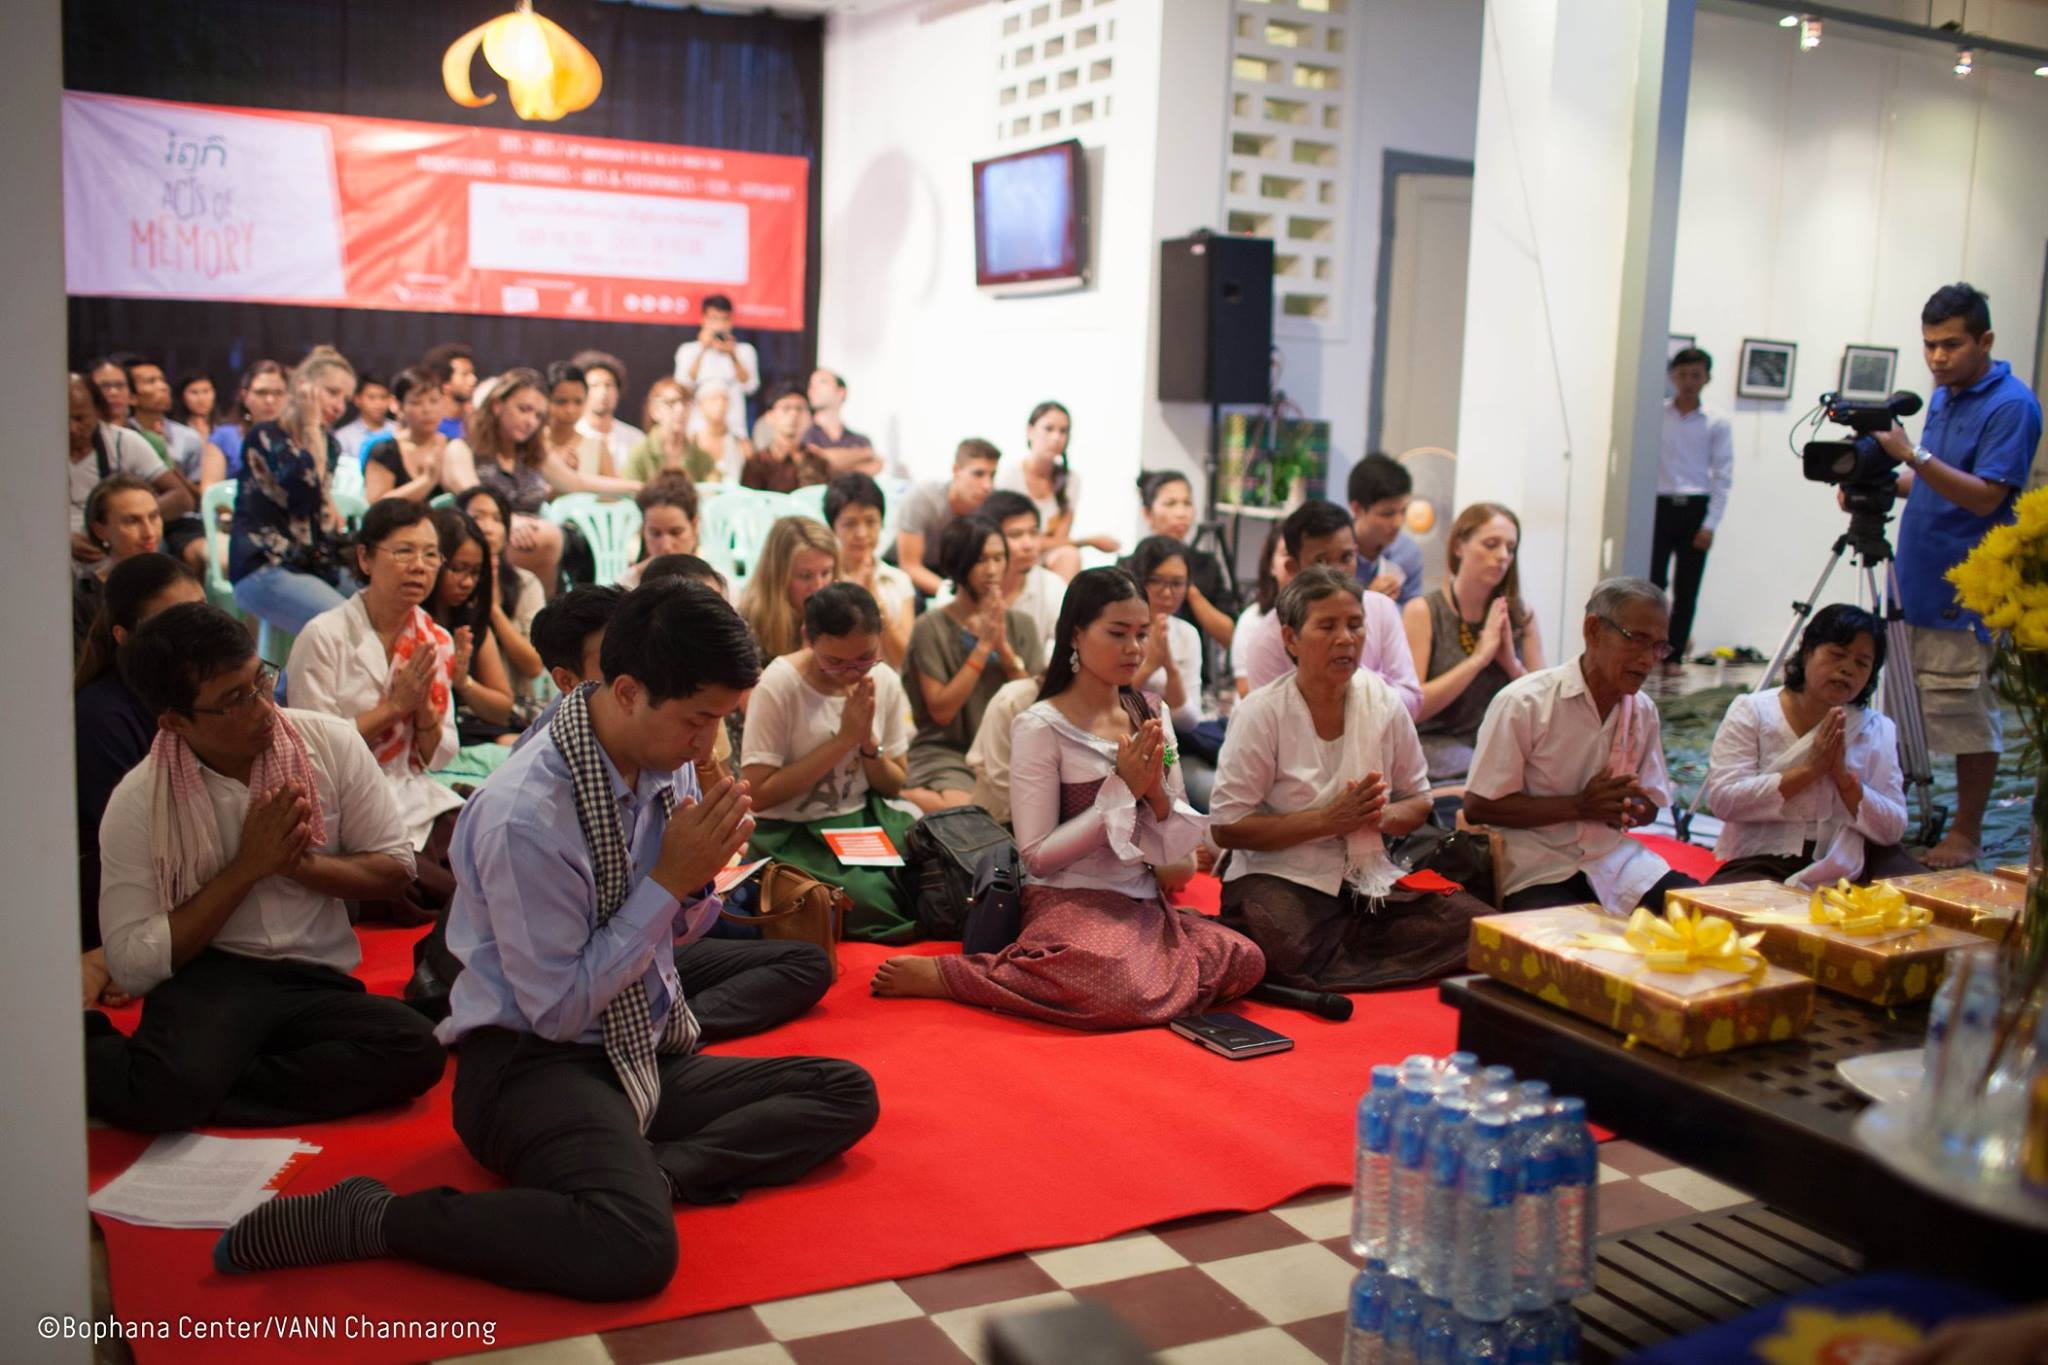 Blessing and Opening Ceremony